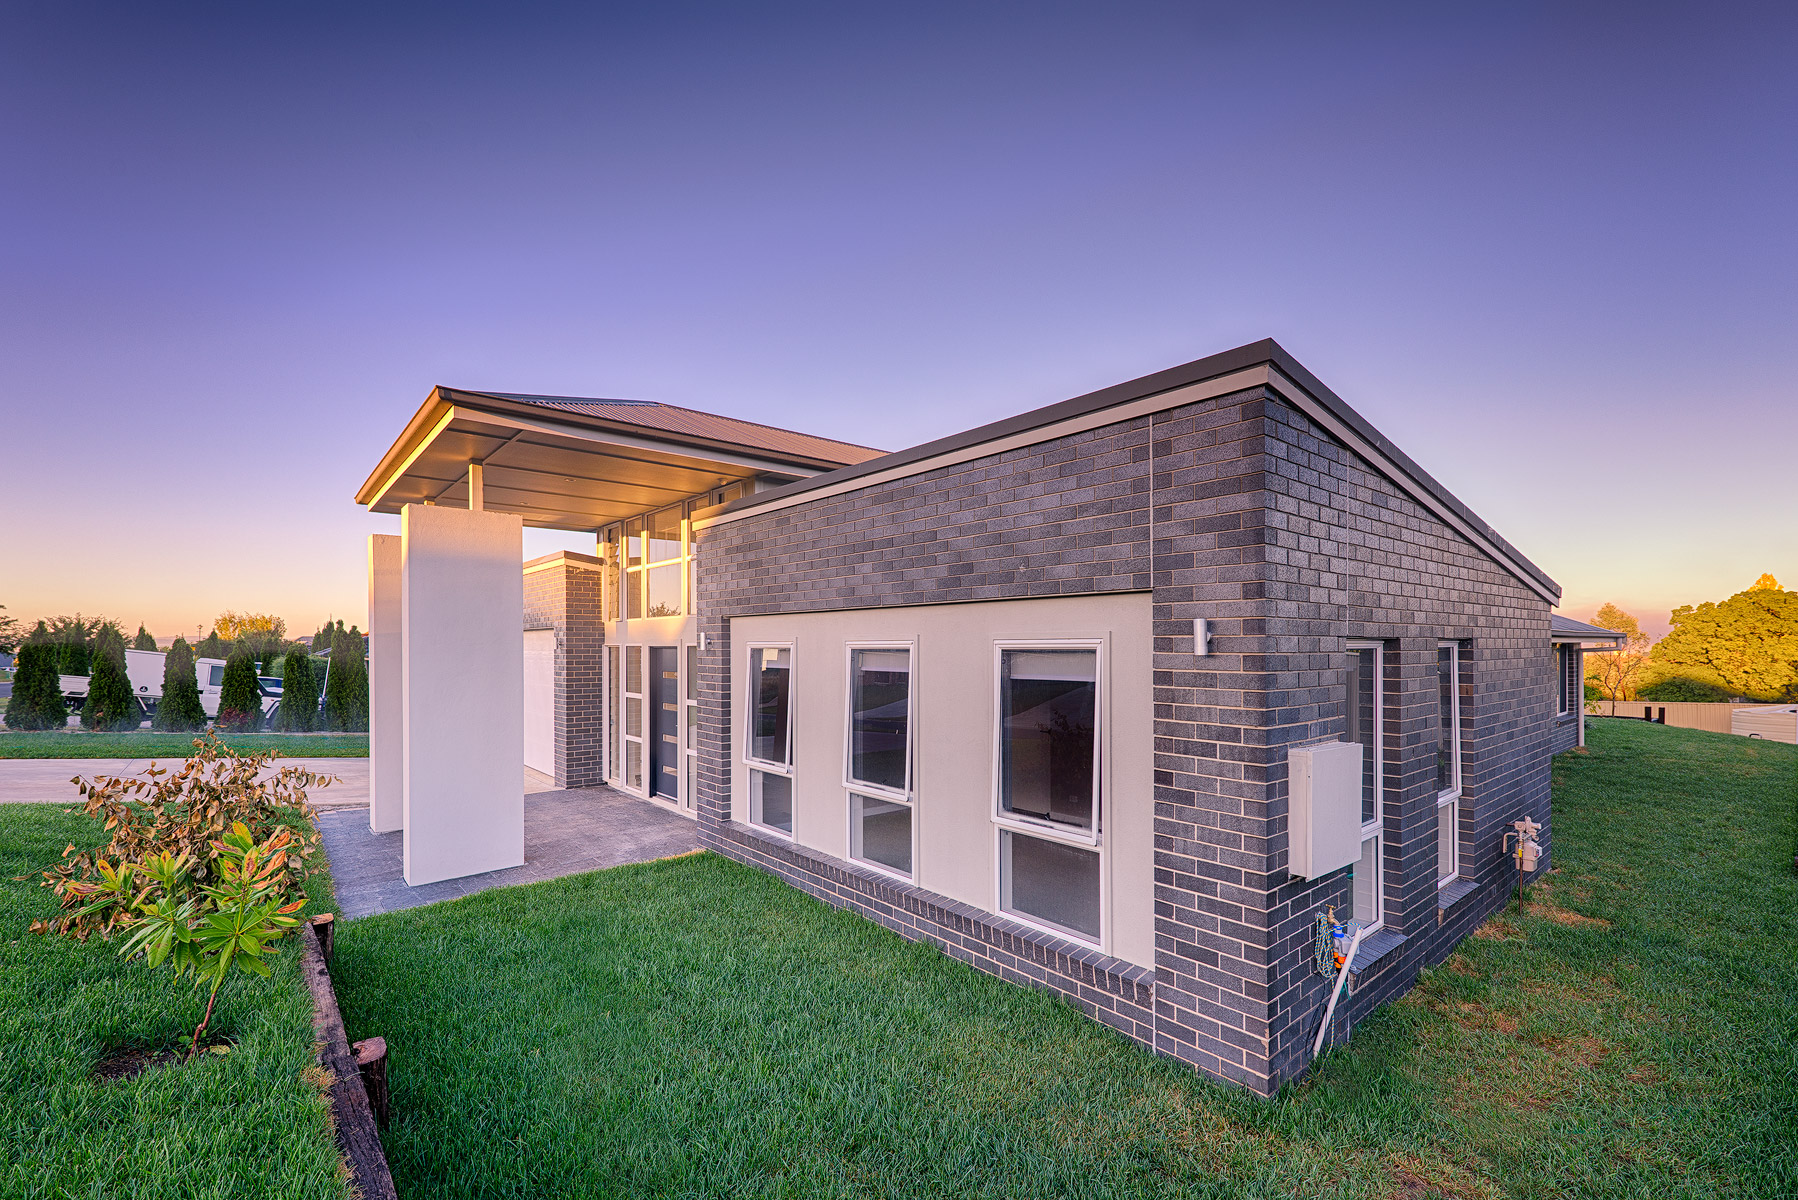 James barnet drive house bathurst for Courtyard designs bathurst